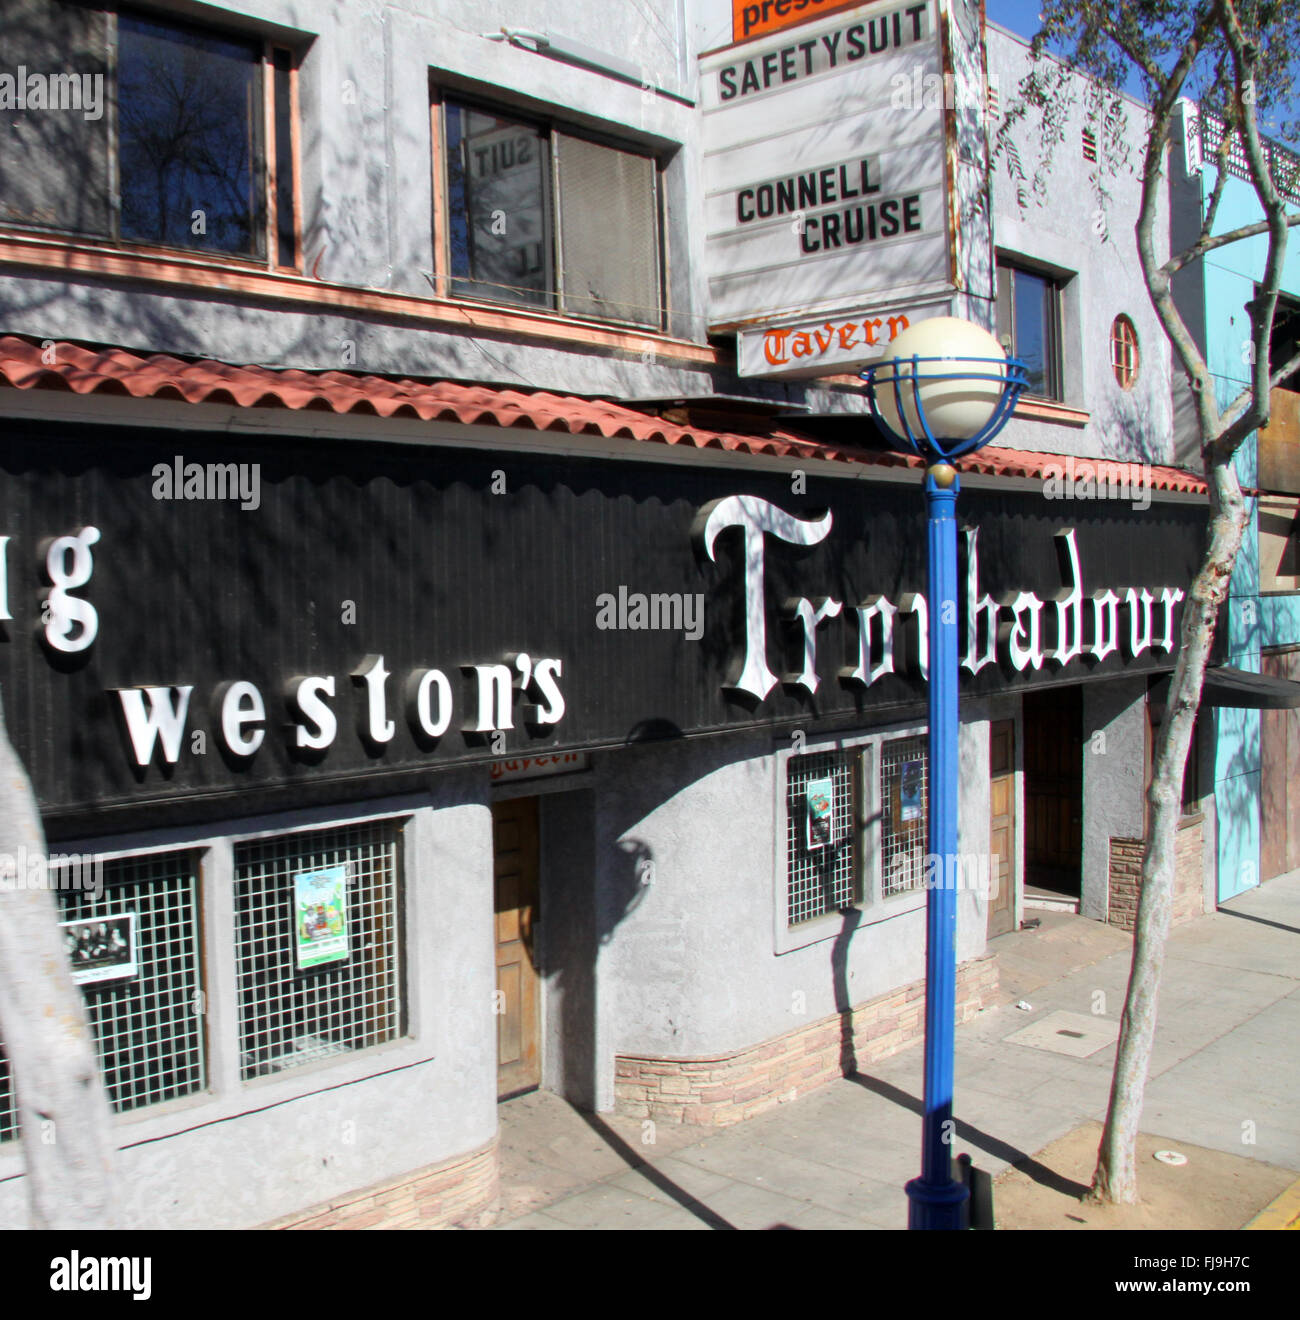 the front facade of Doug Weston's Troubadour Club venue in Beverly Hills, Los Angeles, USA - Stock Image